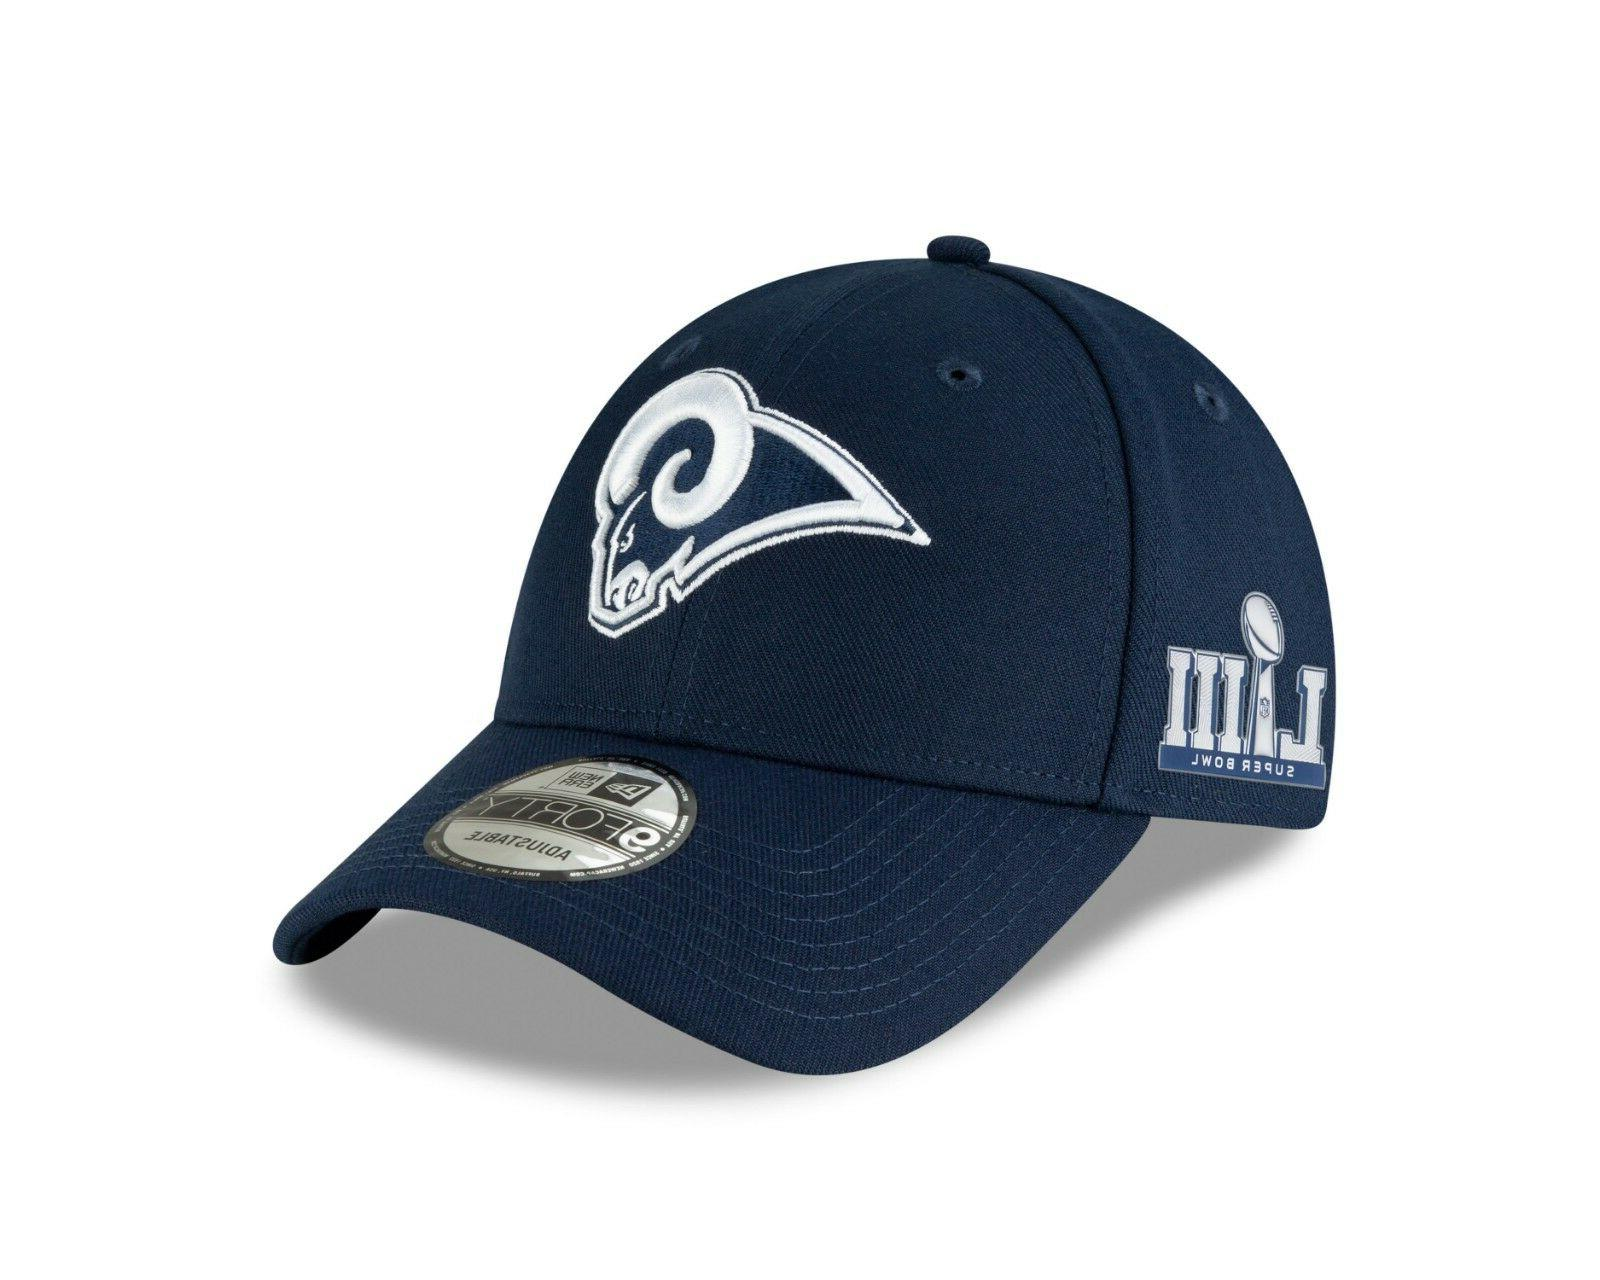 los angeles rams super bowl liii side